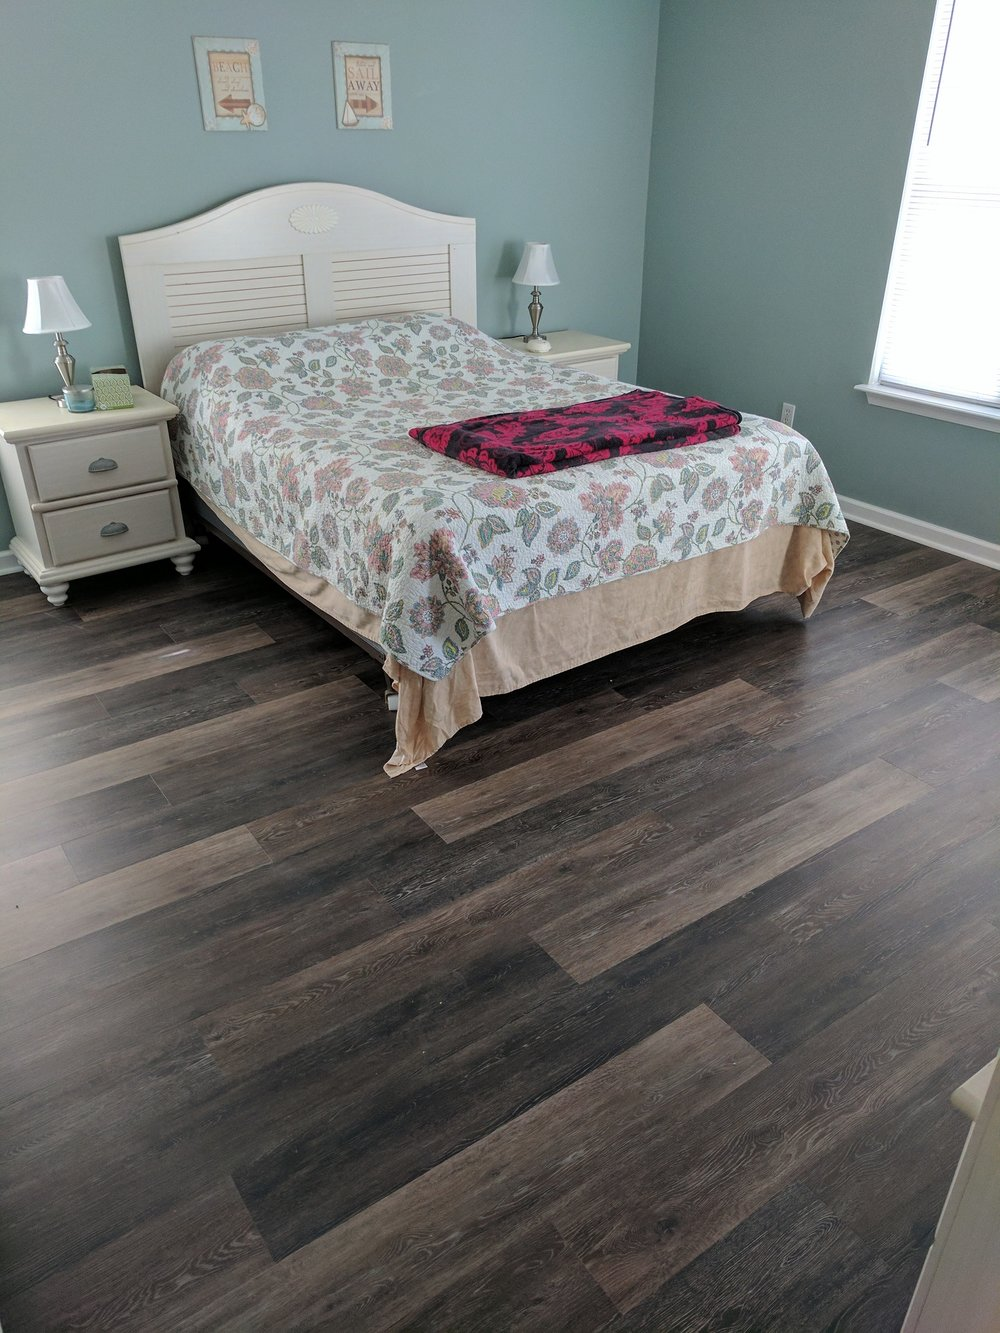 Thanks again Anthony. I'm very happy with the way the floors turned out. I'll definitely refer you to anyone who asks about flooring. God Bless -